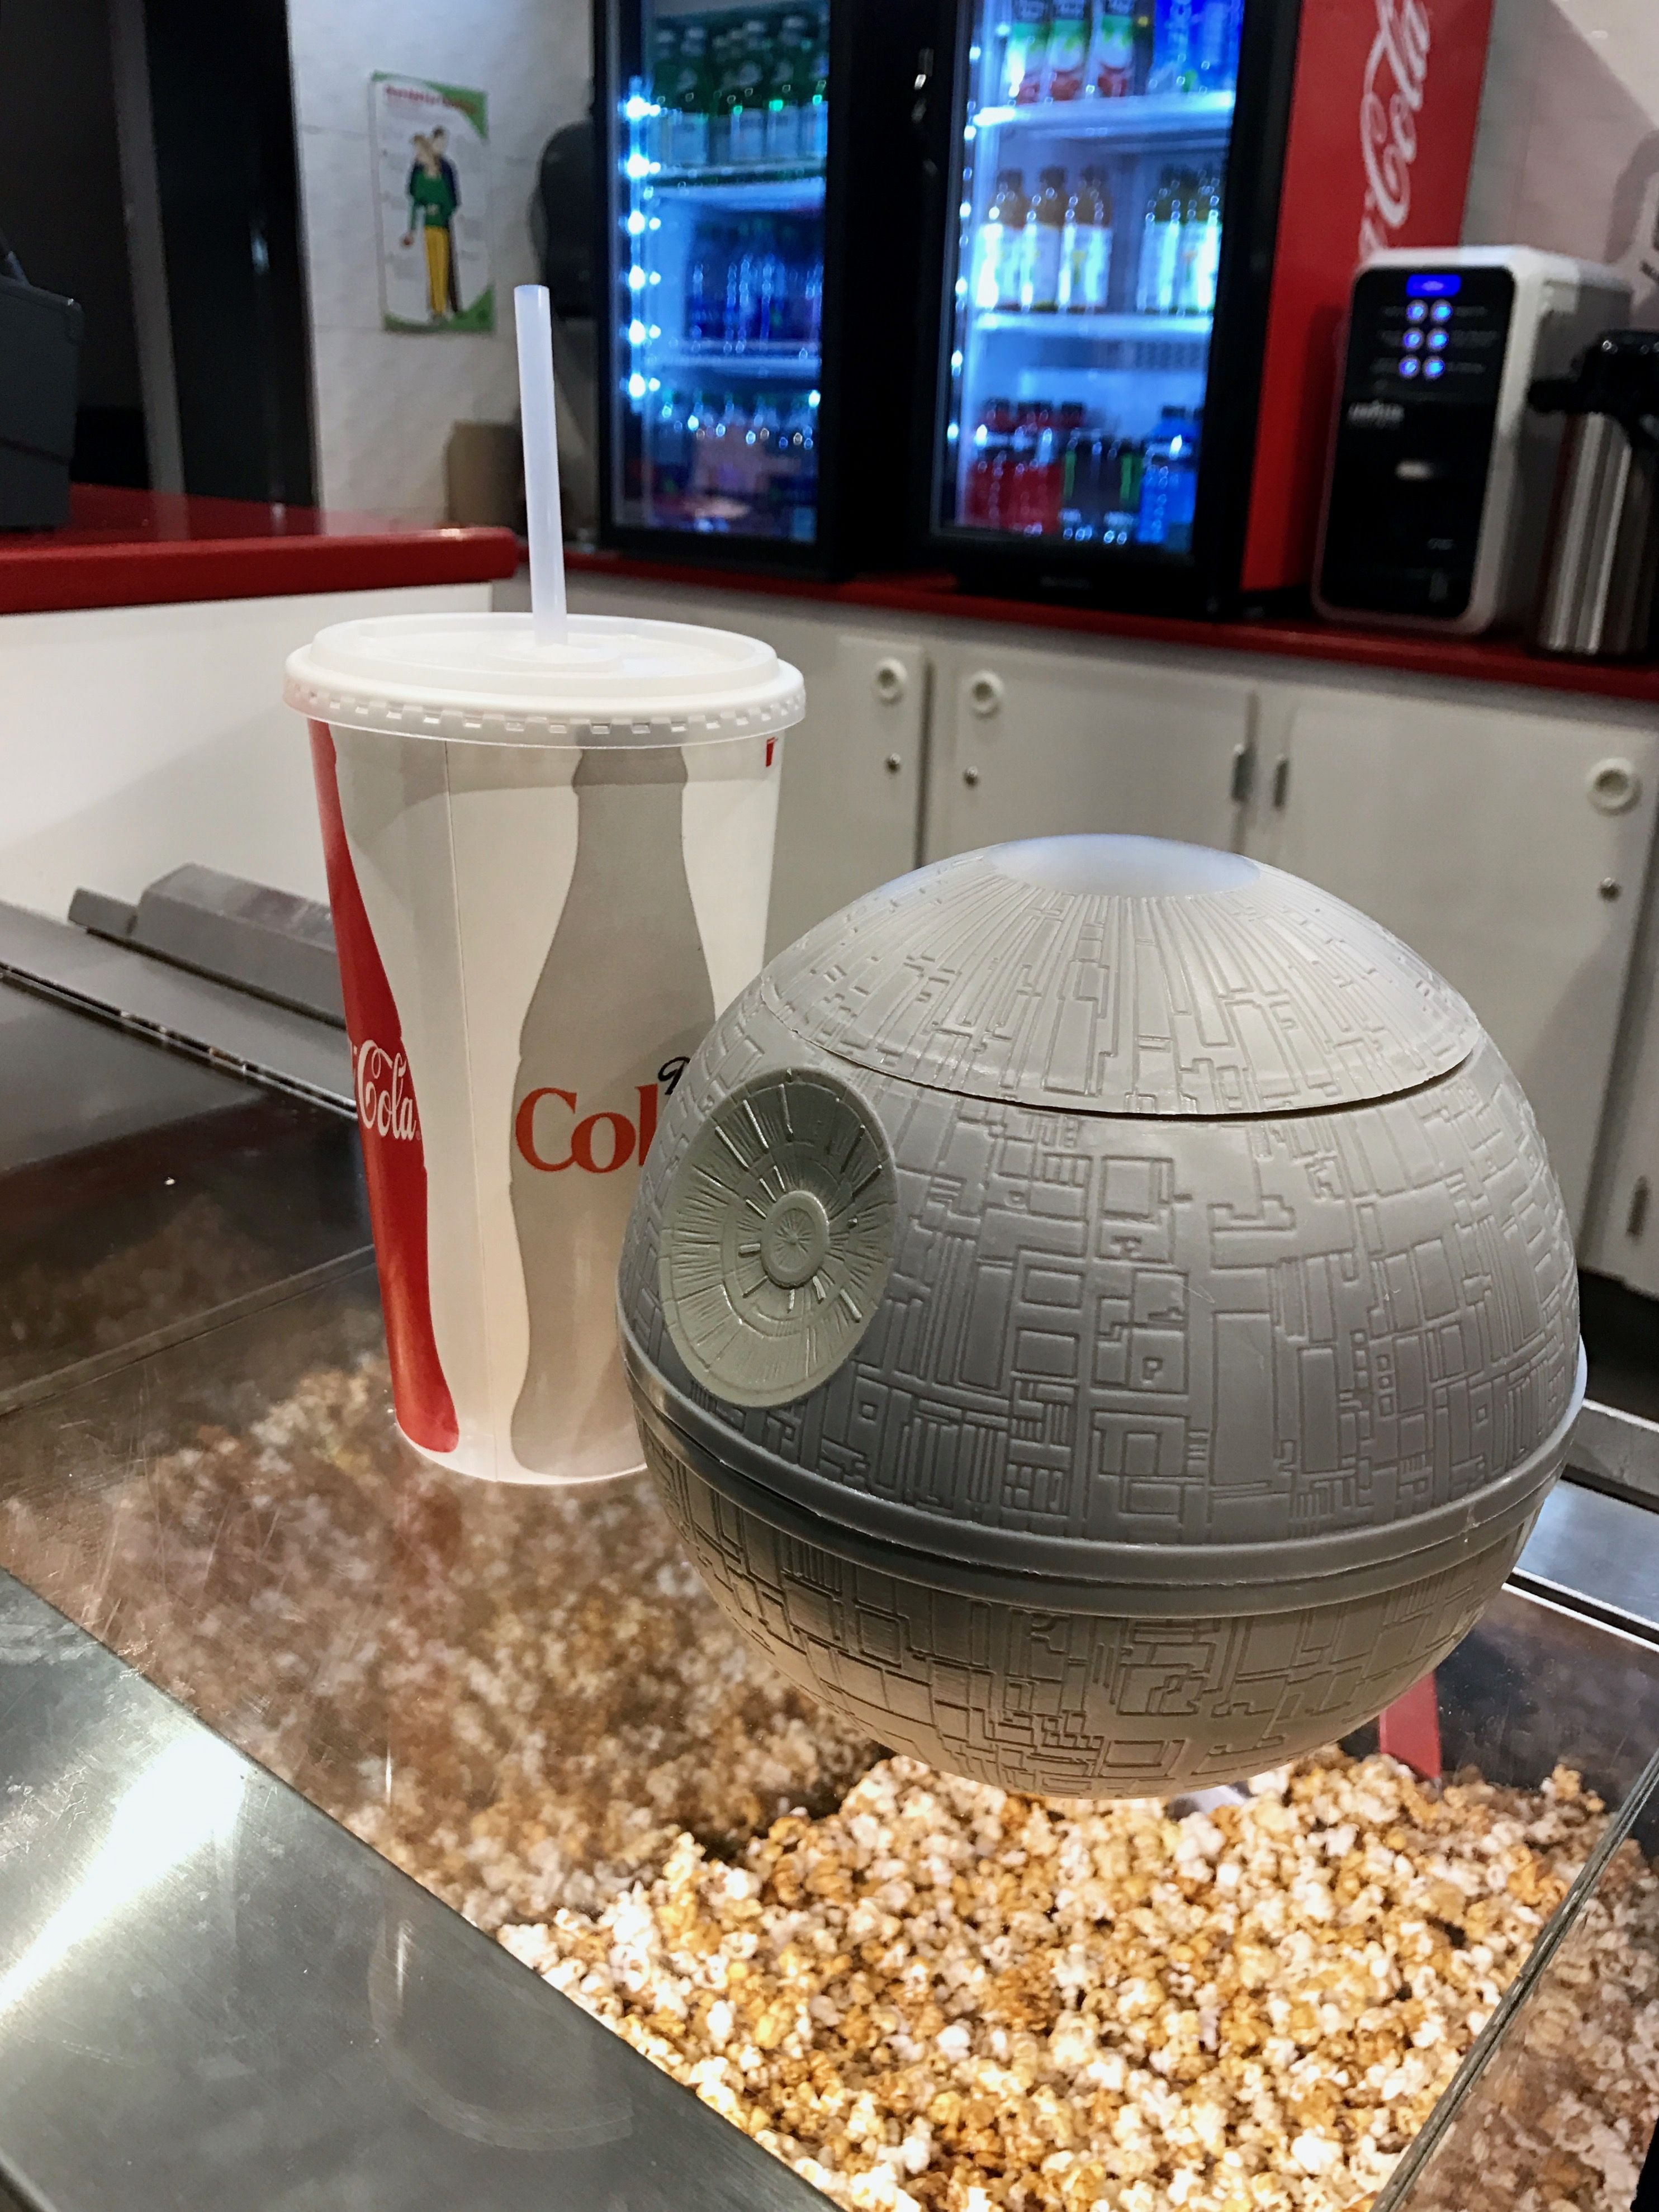 at star cups disneyland theaters img also for talk tubs collectible and the available tub c had cinemark wars jedi they popcorn buckets lands last